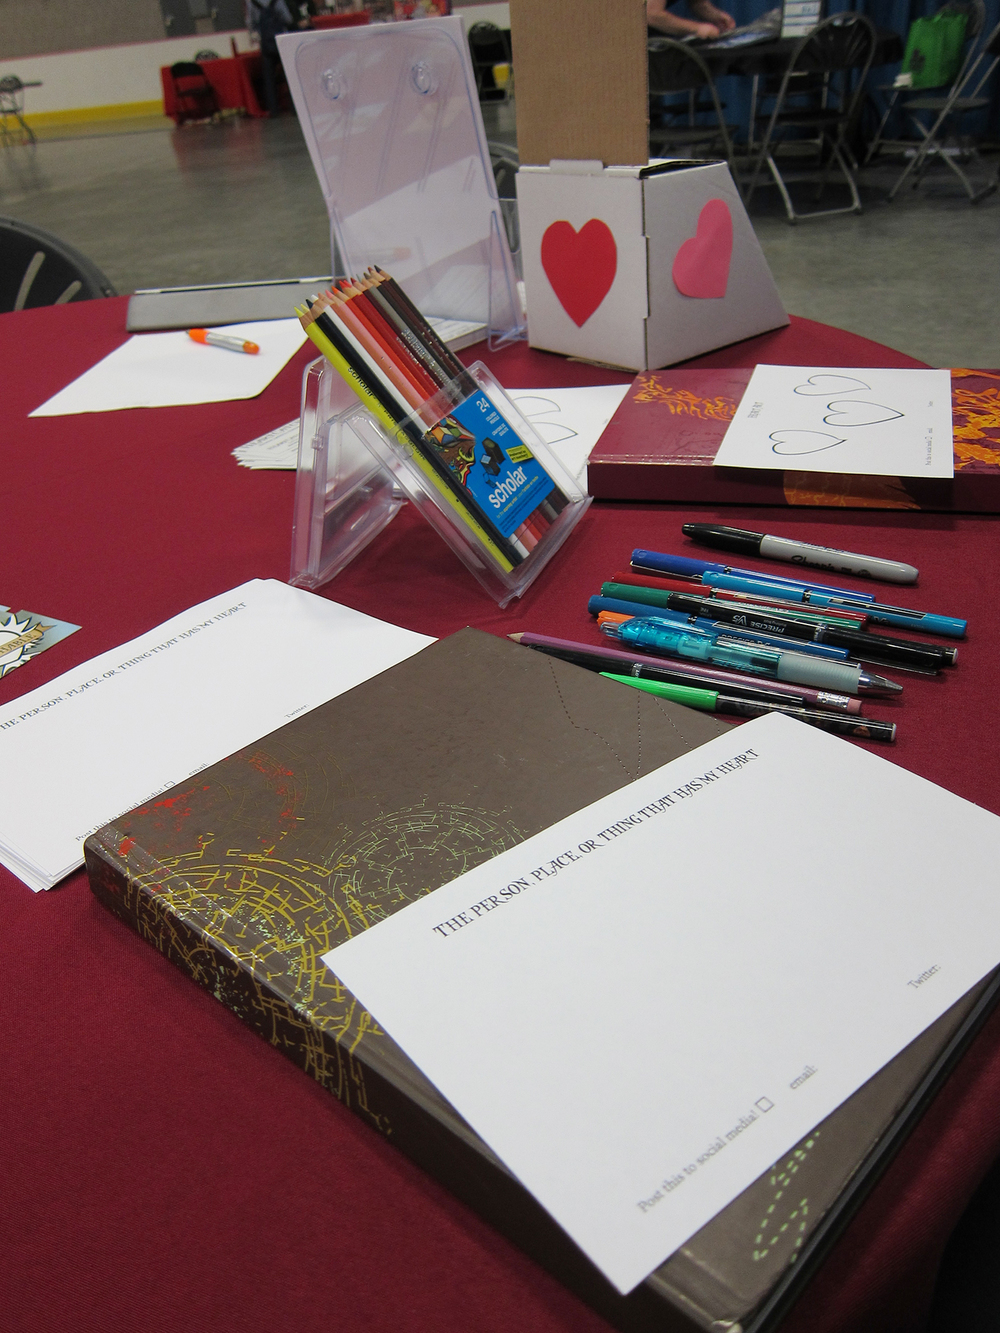 heartcatcher-boston-fig-booth-2.jpg